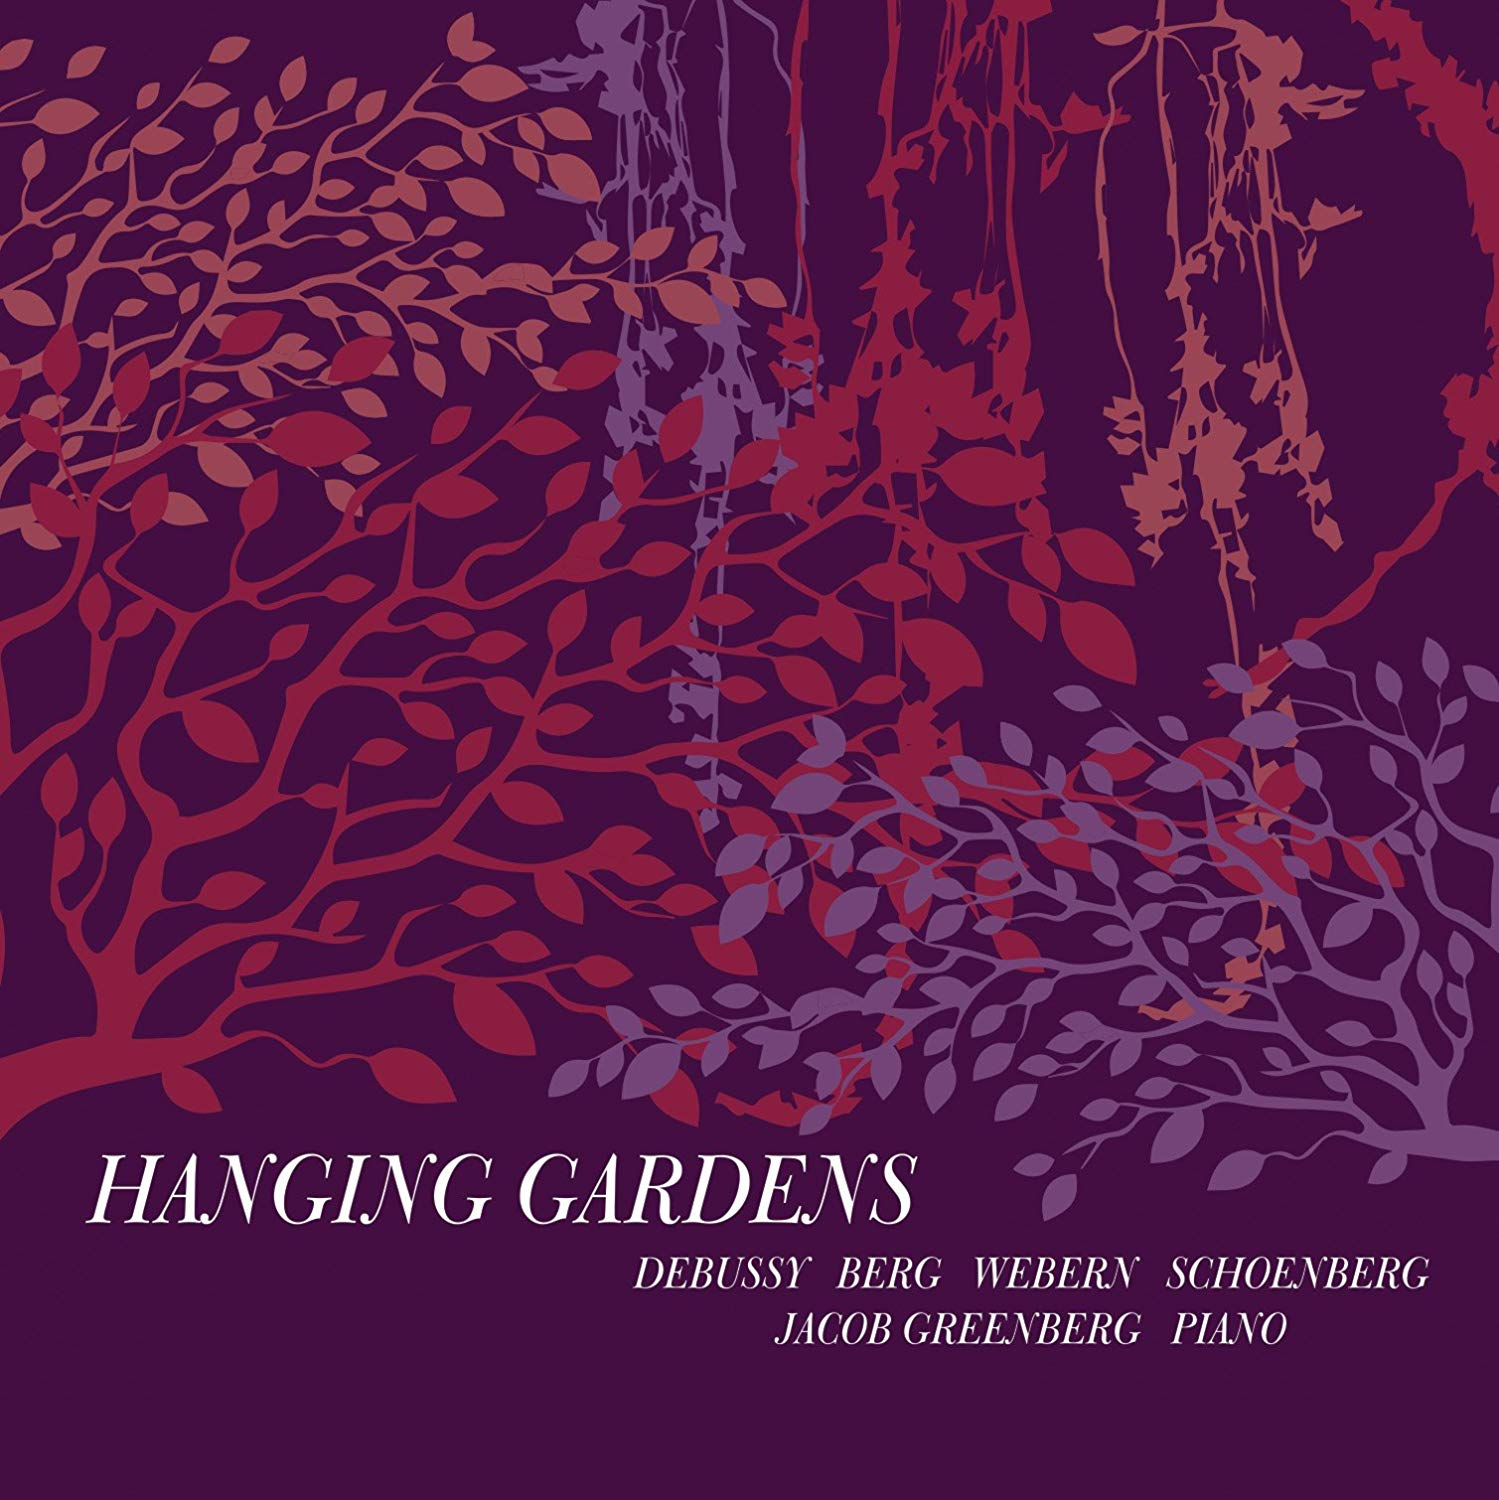 New Music BuffTag Archives: Jacob GreenbergMy 2018 in theArtsJacob Greenberg Putting Debussy inContextICE Debuts on Starkland: Music by Phyllis Chen and NathanDavisBlogrollMy facebook pageTop RatedTagsCategoriesBlogs I FollowArchives